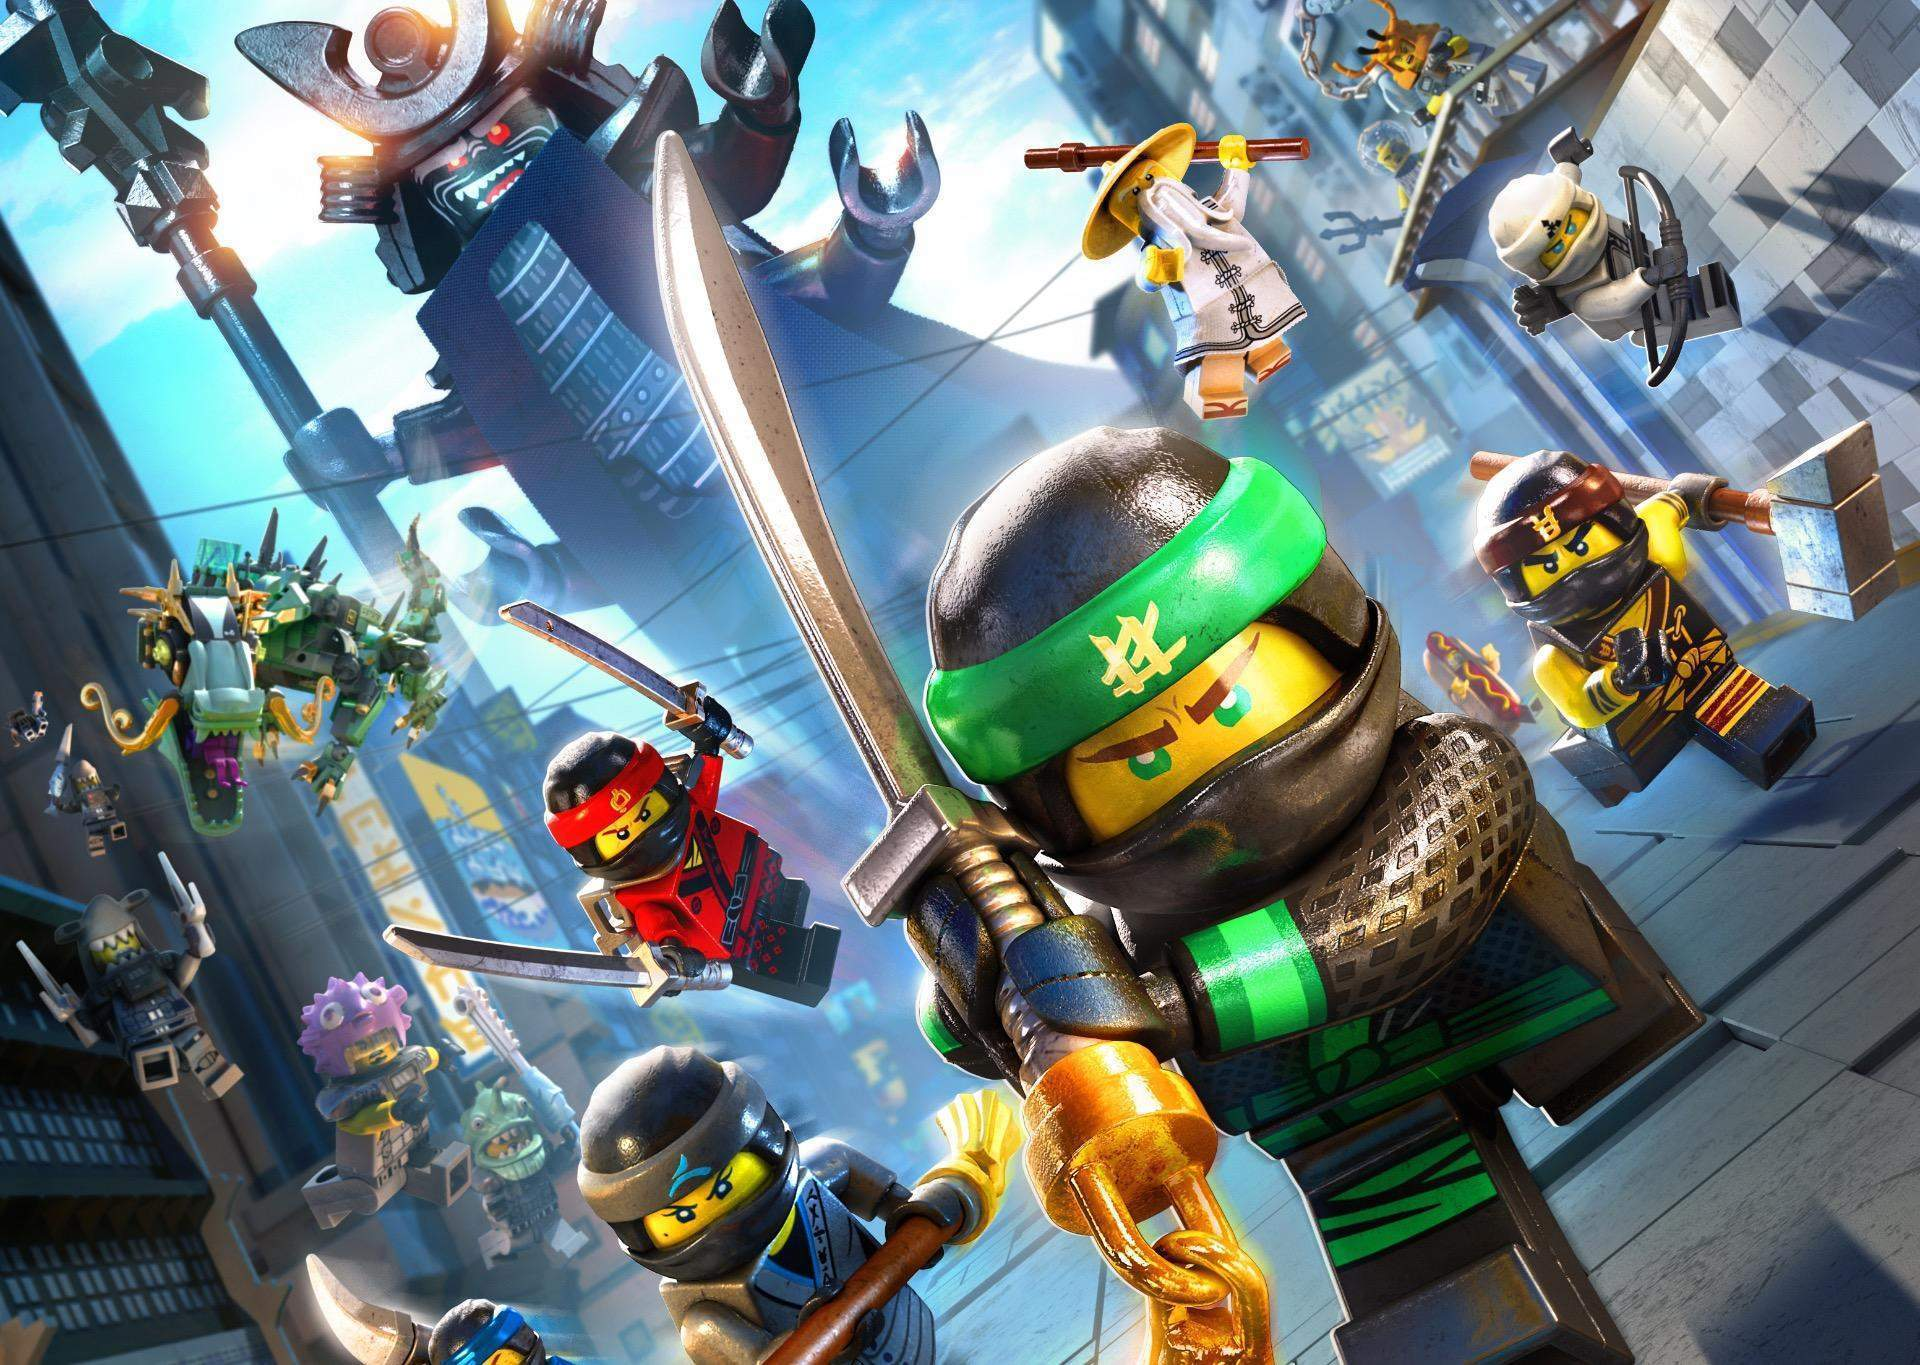 Why The Lego Ninjago Movie is the perfect Brexit parable